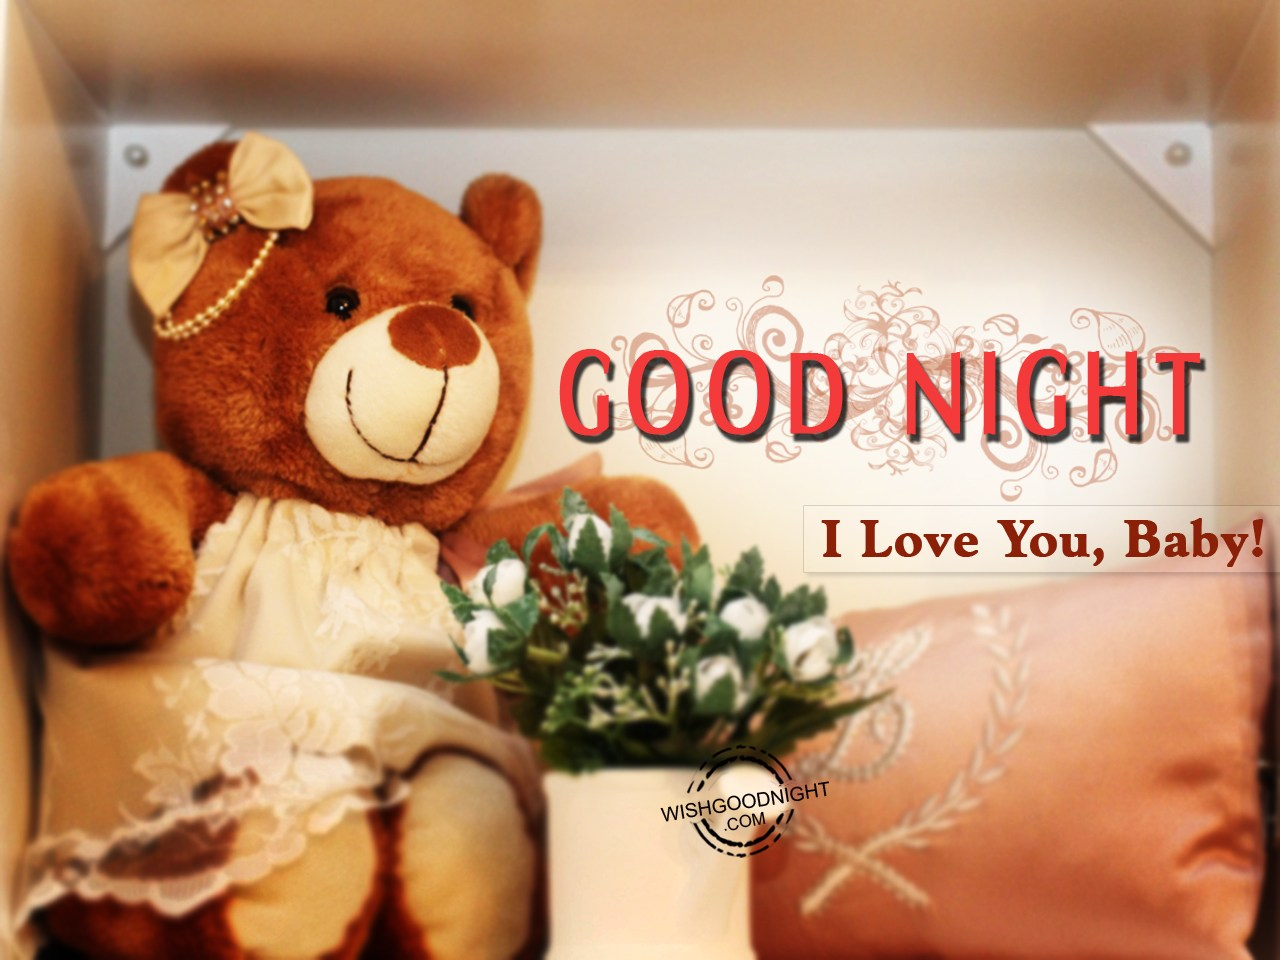 Good Night I Love You, Baby! - Good Night Pictures WishGoodNight.com